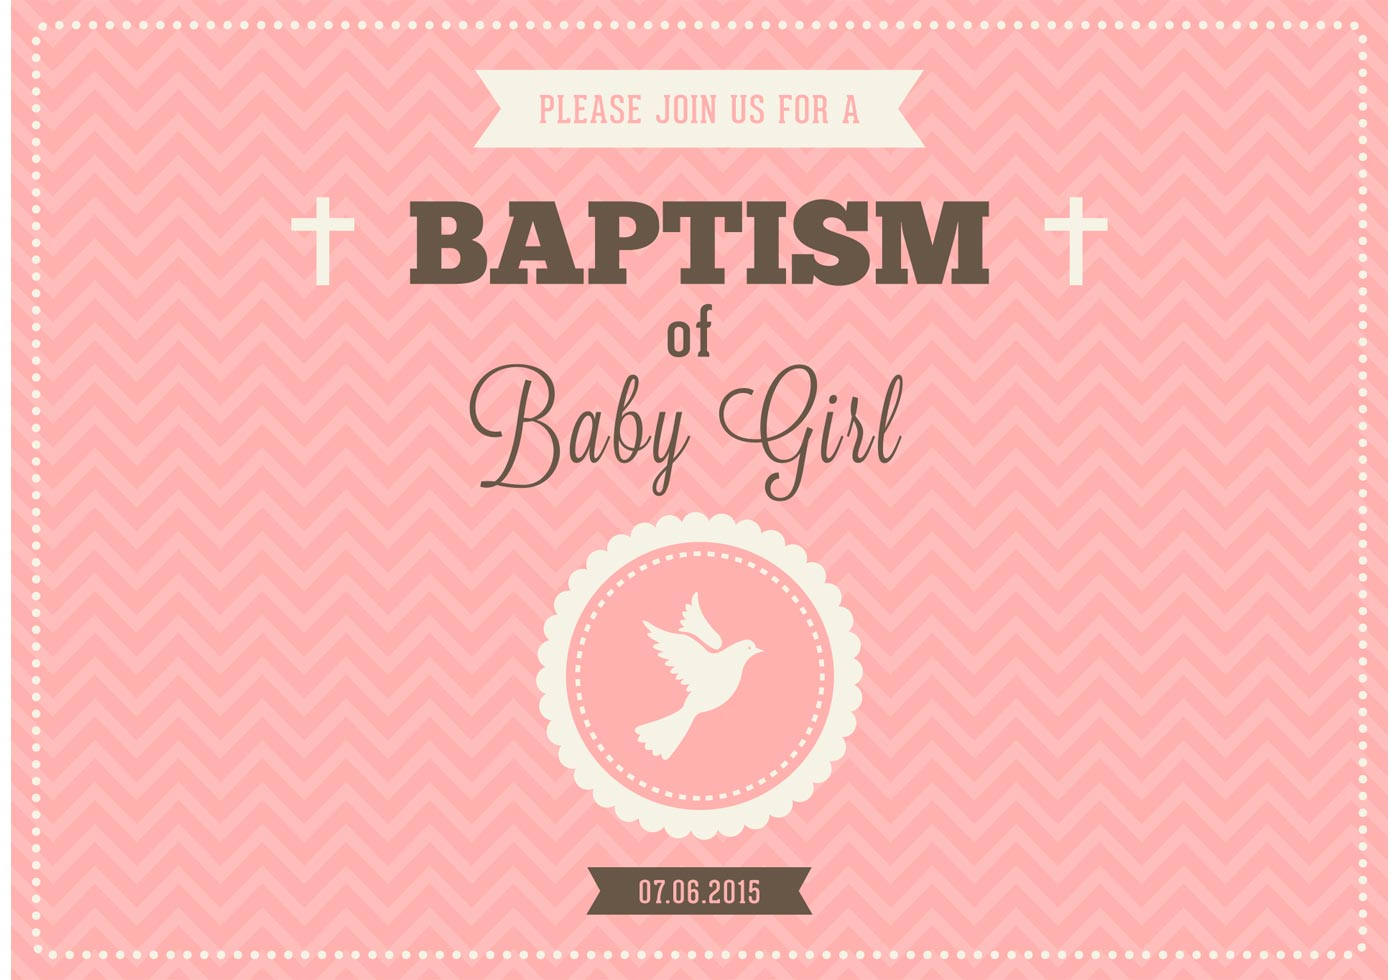 Baby Girl Baptism Vector Invitation - Download Free Vector ...